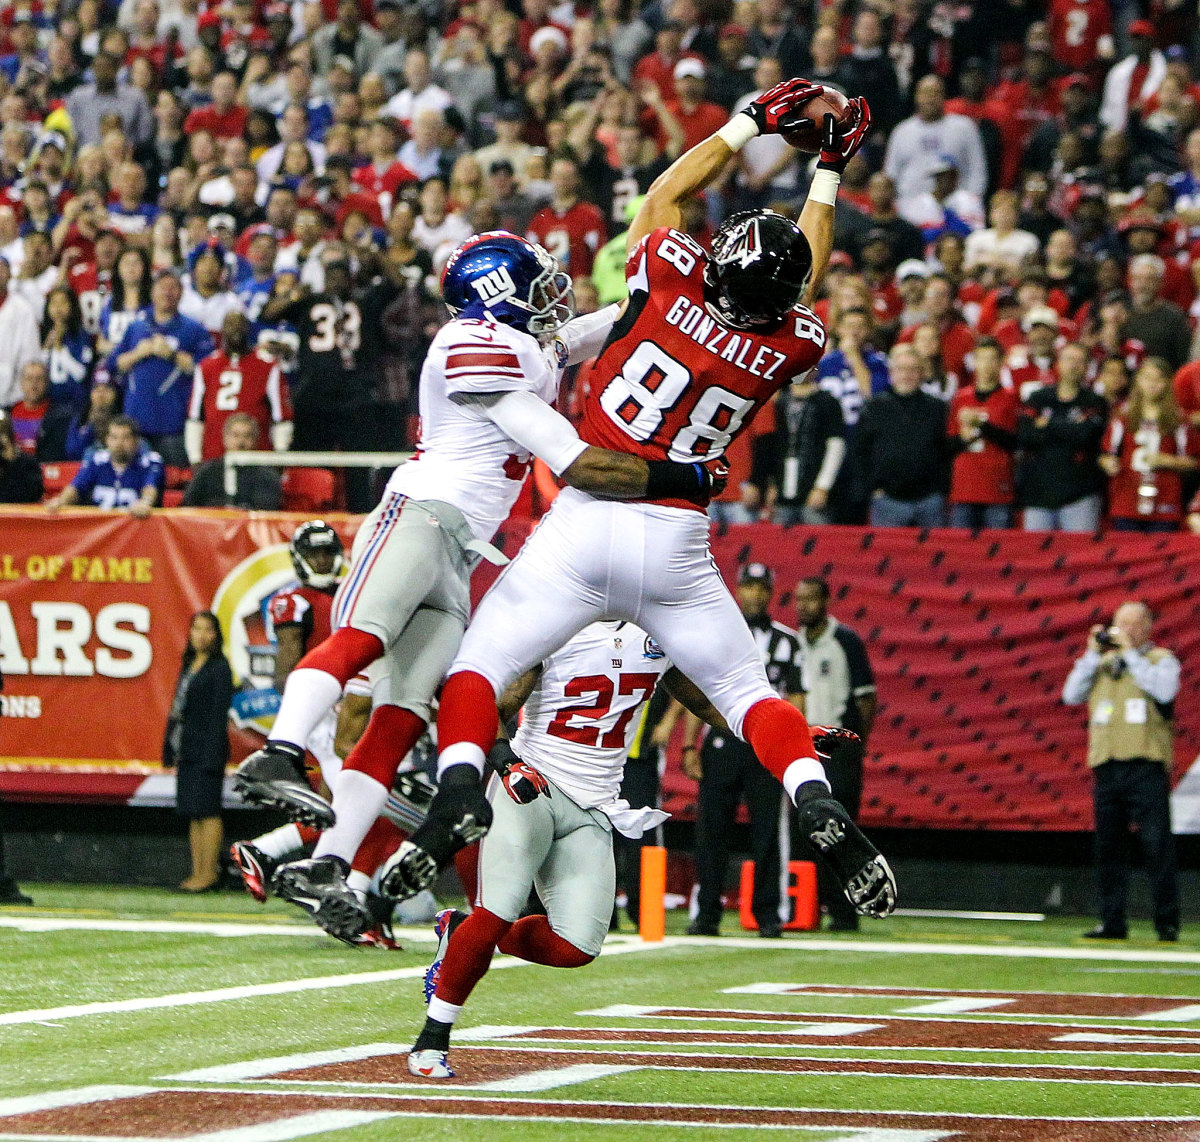 The tight end Tony Gonzalez is capable of catching the ball and blocking for teammates.